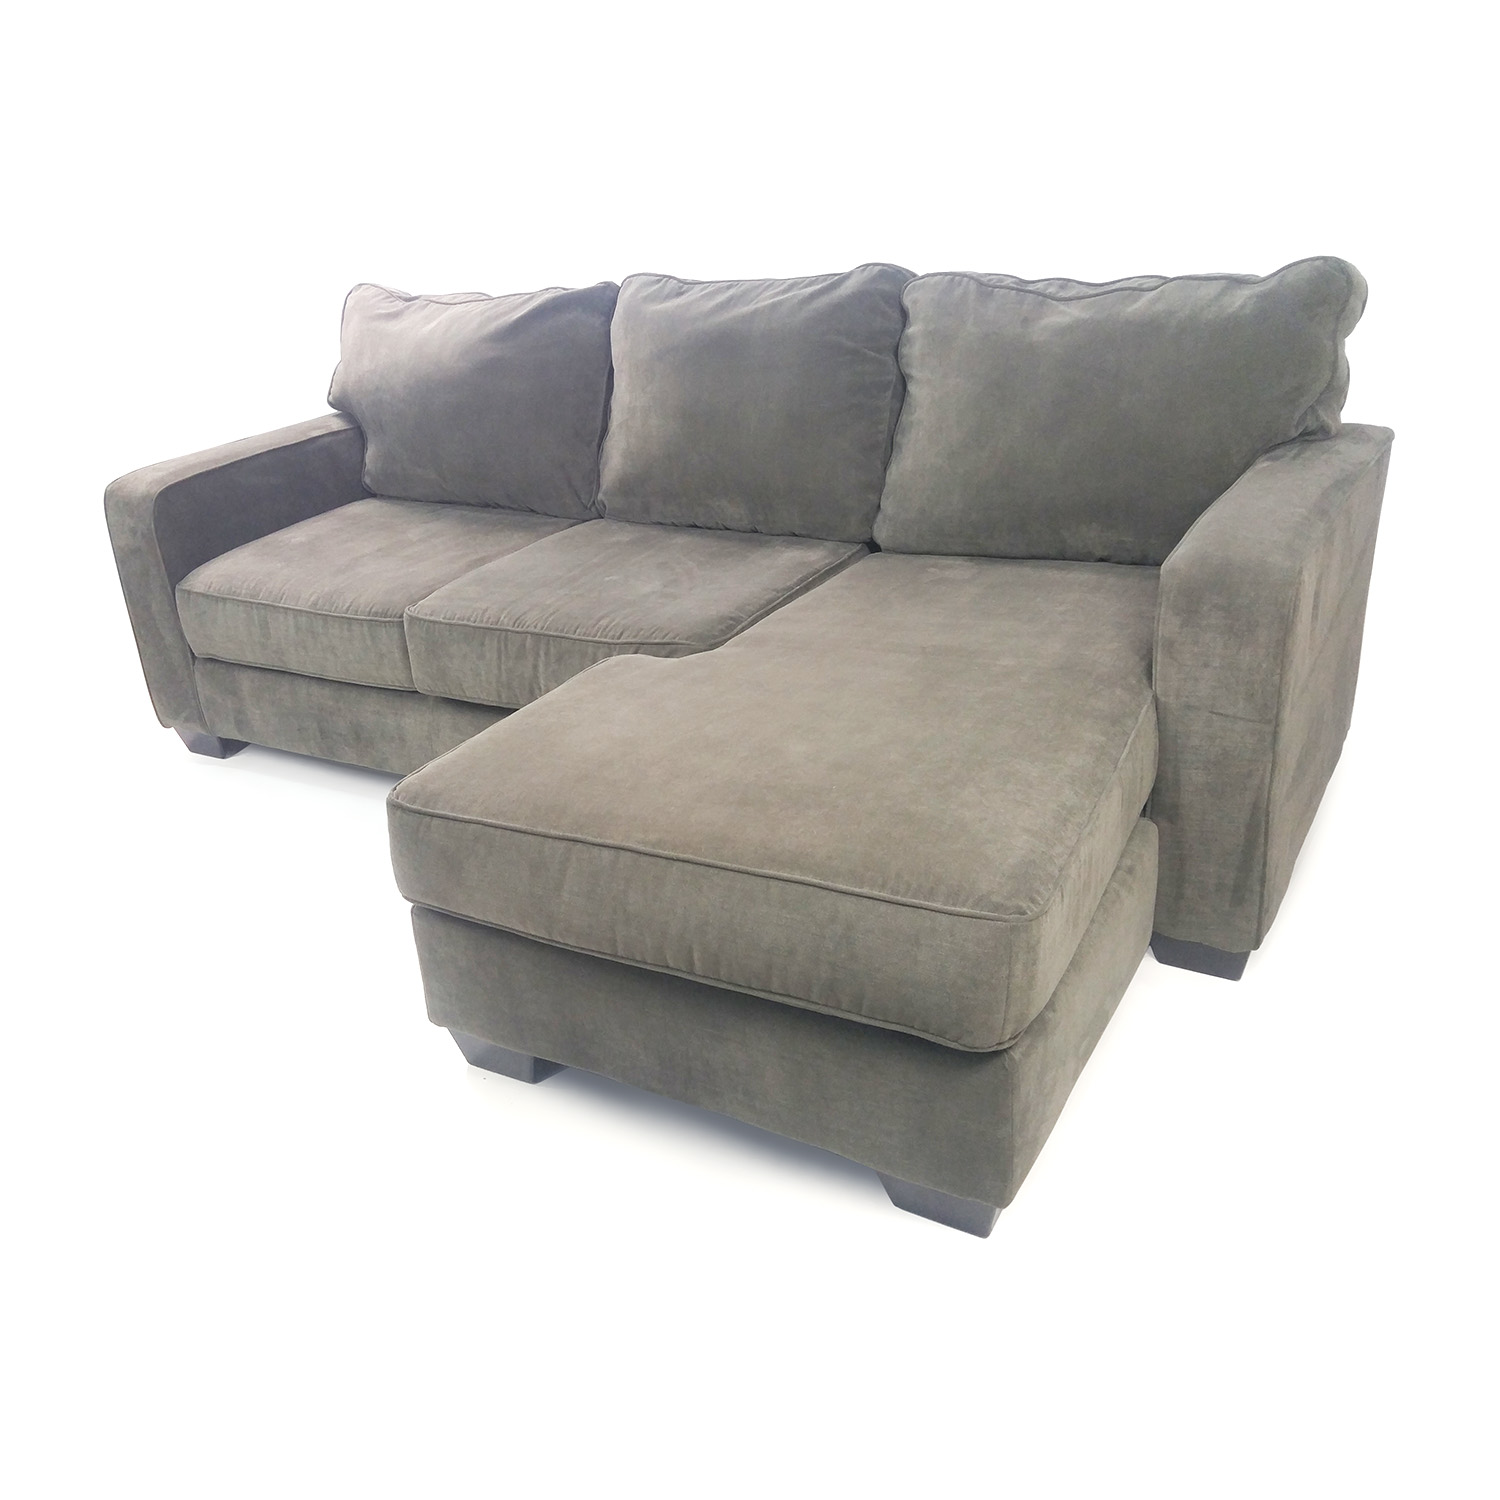 50 off ashley furniture hodan sofa chaise sofas for Sofa bed ashley furniture